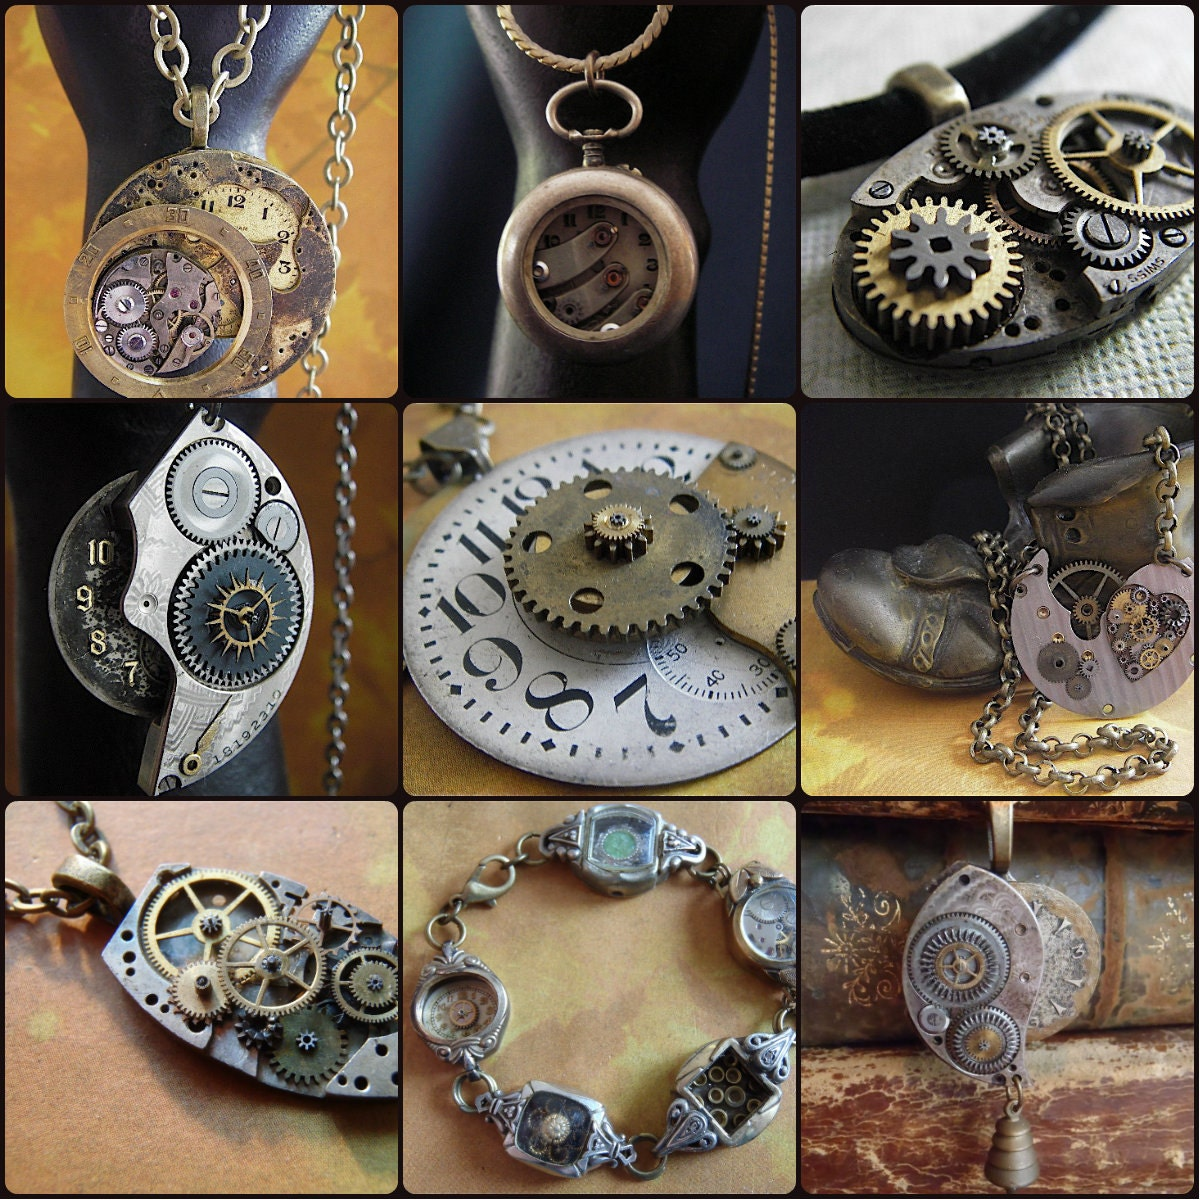 Is Steampunk Jewelry A Craft Or An Art: How To Create Steampunk Jewelry Tutorial DVD Set Steampunk